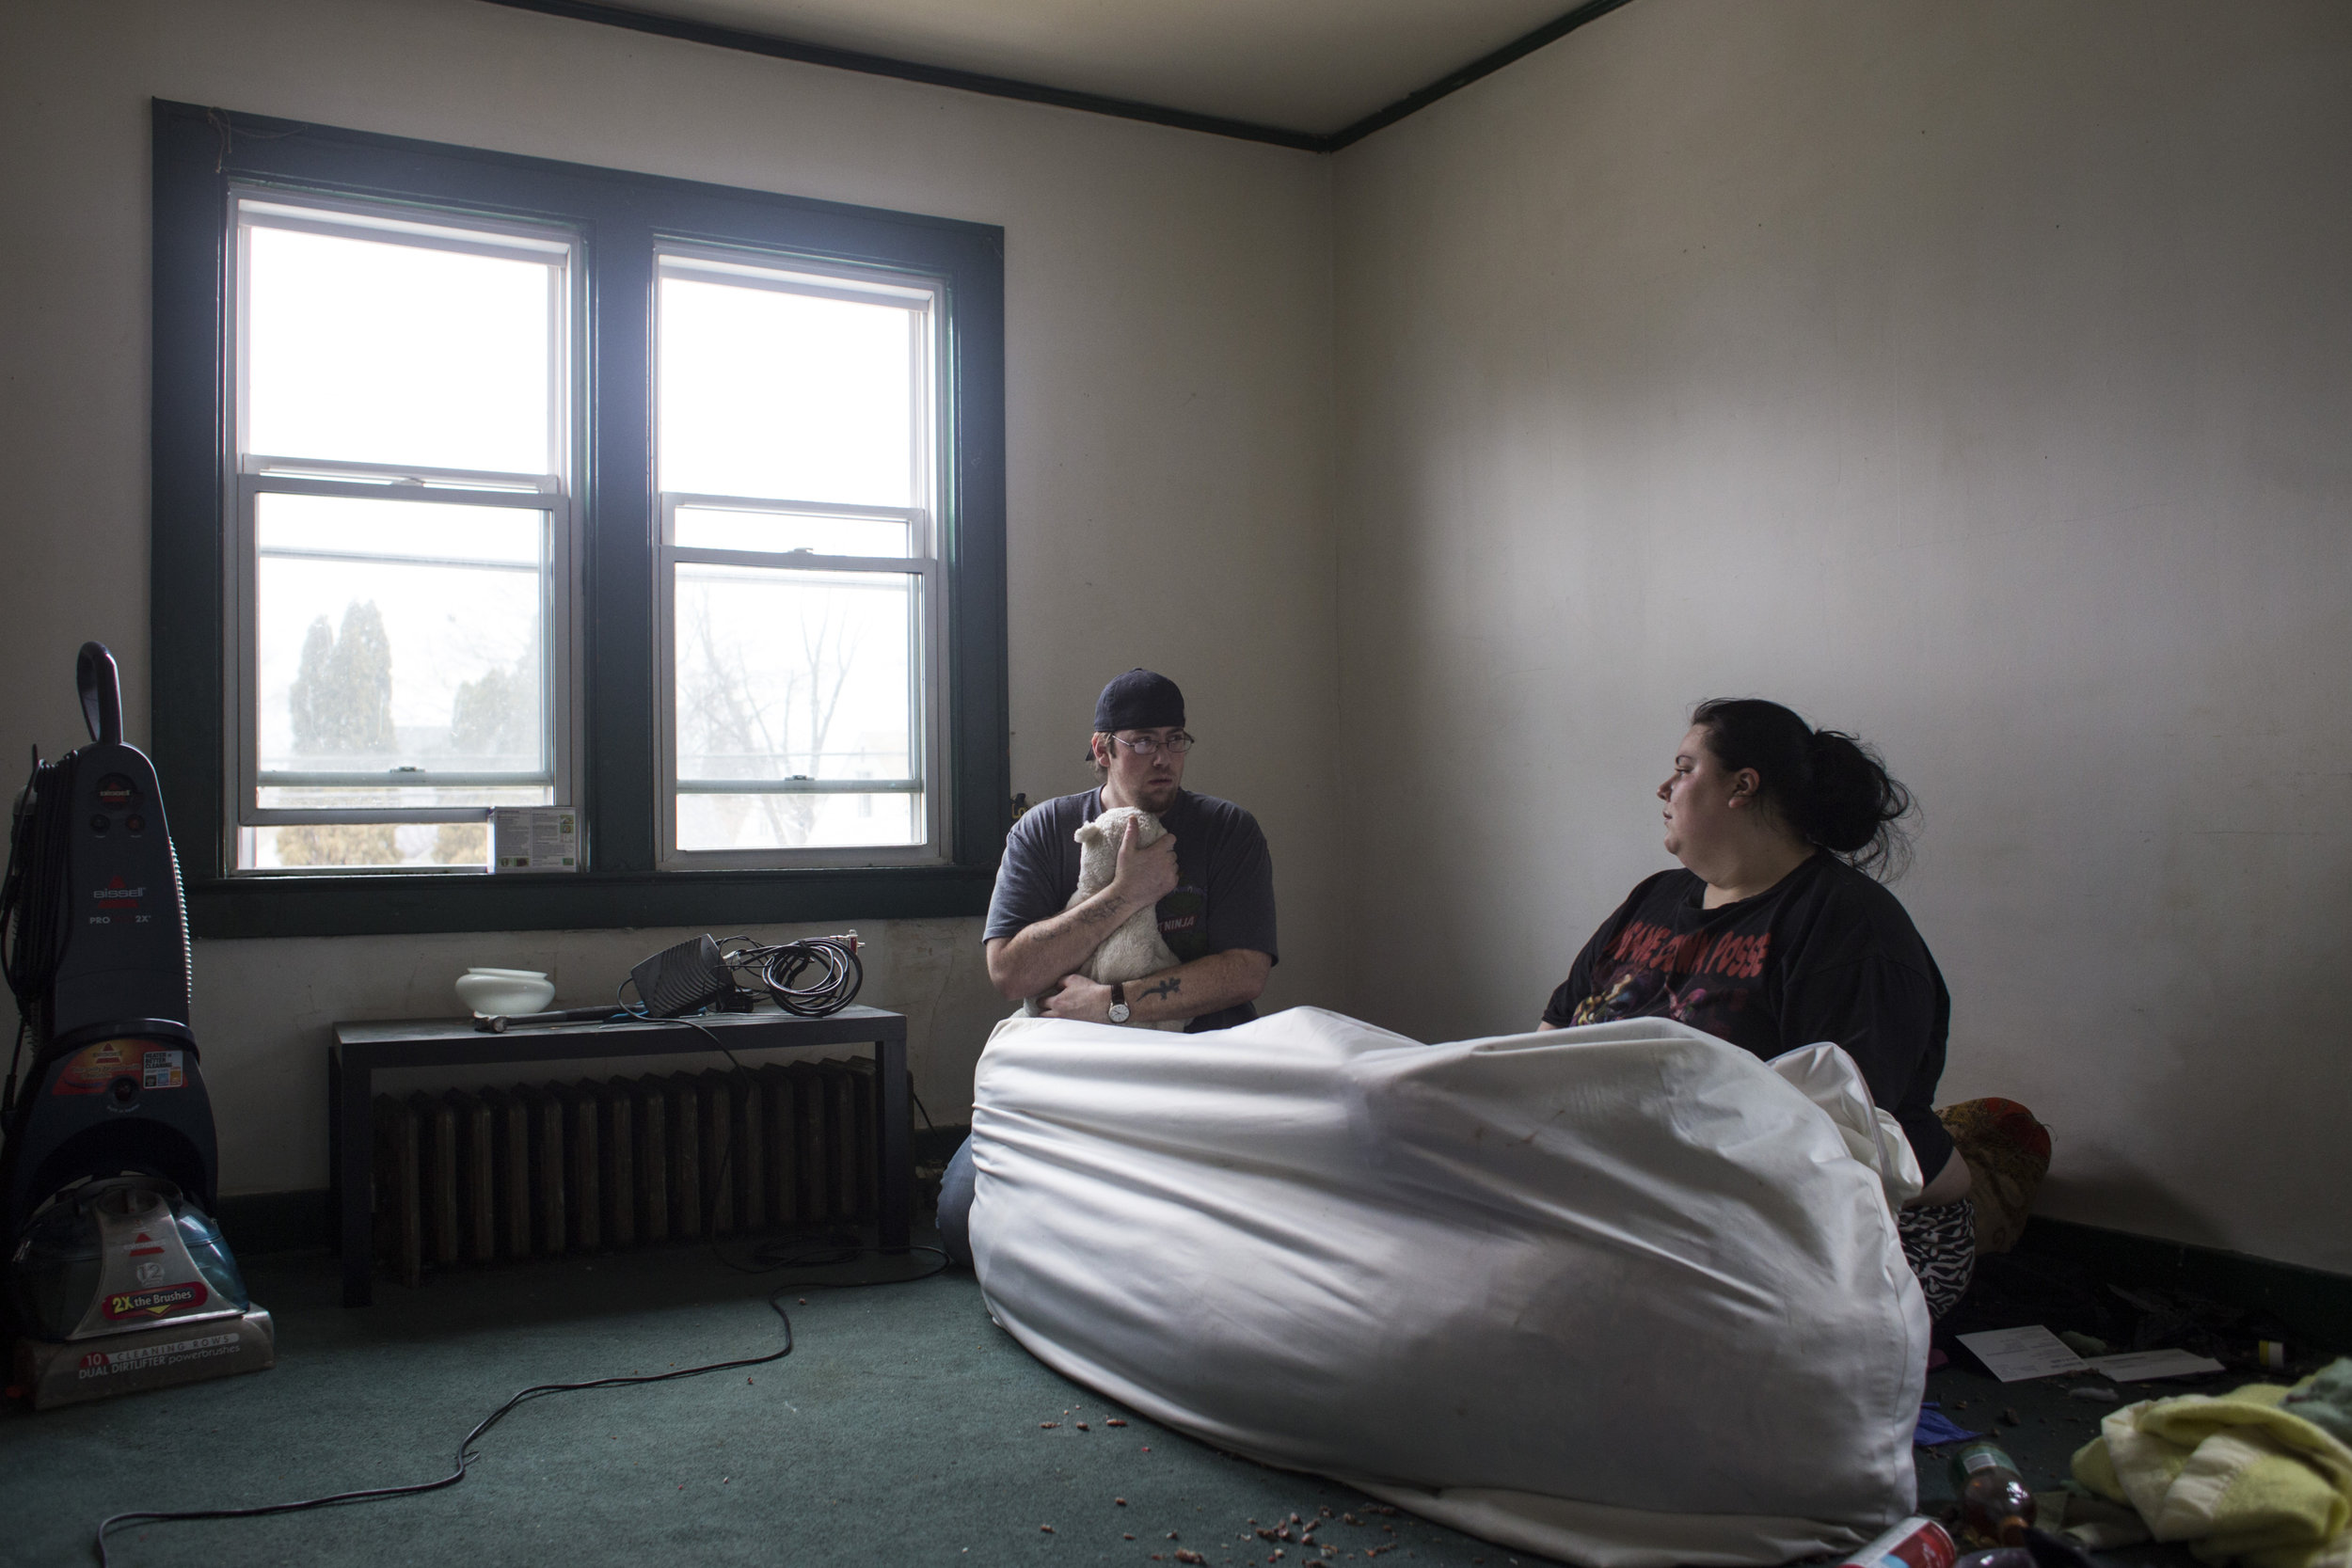 Jeff Sorensen, 33, clings on to a teddy bear while packing his studio apartment with his wife, Jess, as they prepare to move to Utah on February 26, 2016. The couple relocated due to the water crisis and lack of employment options in the city of Flint.